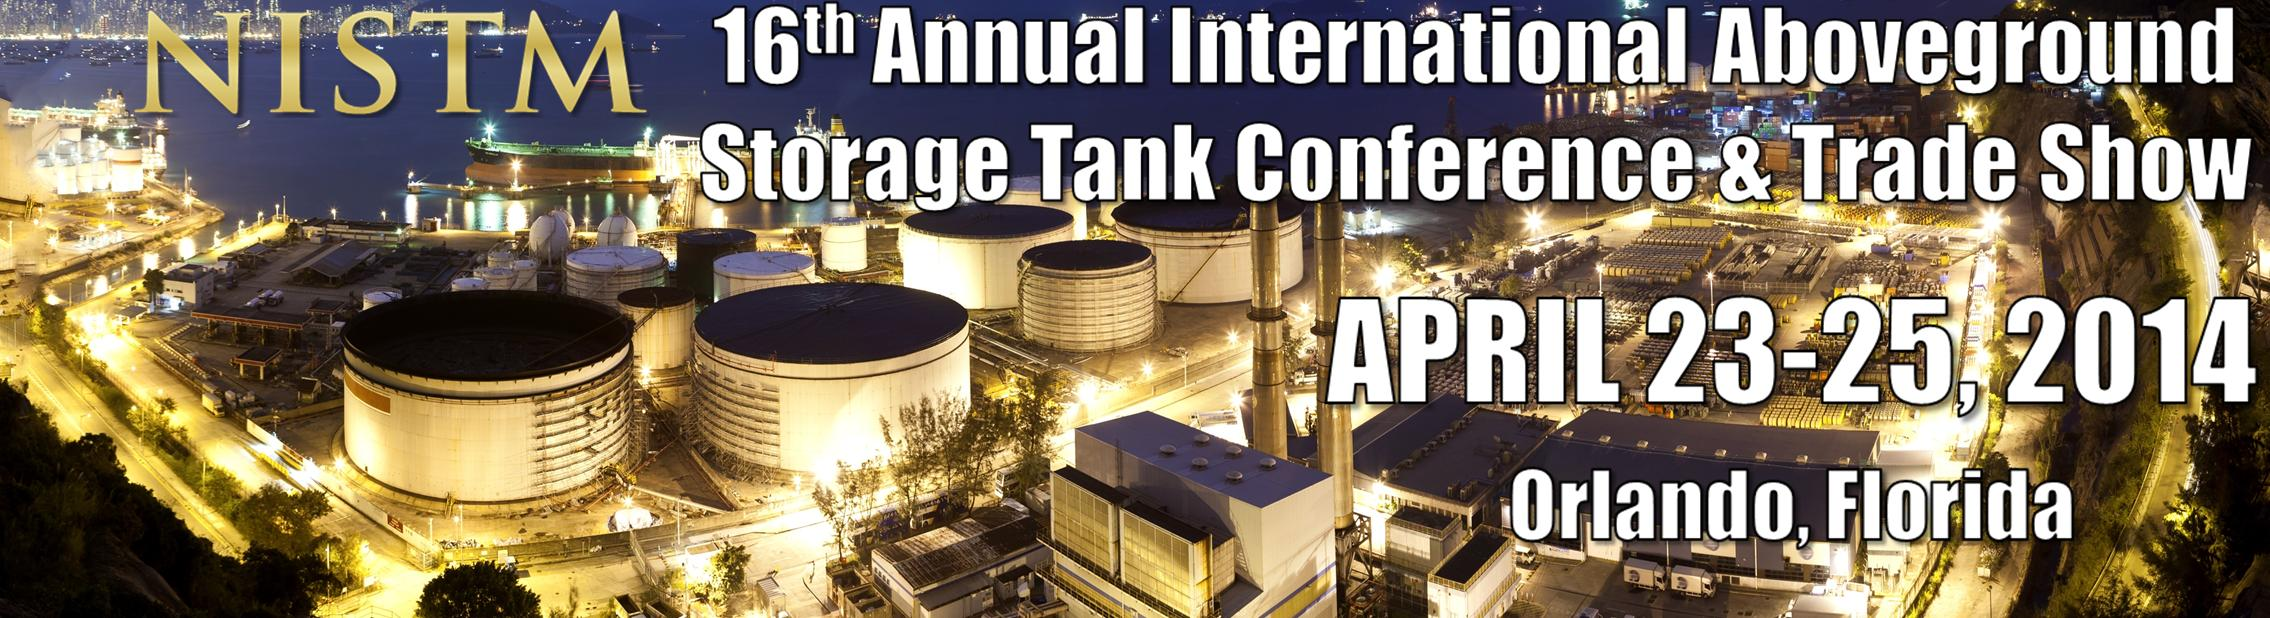 NISTM 16th Annual International Aboveground Storage Tank Conference and Trade Show